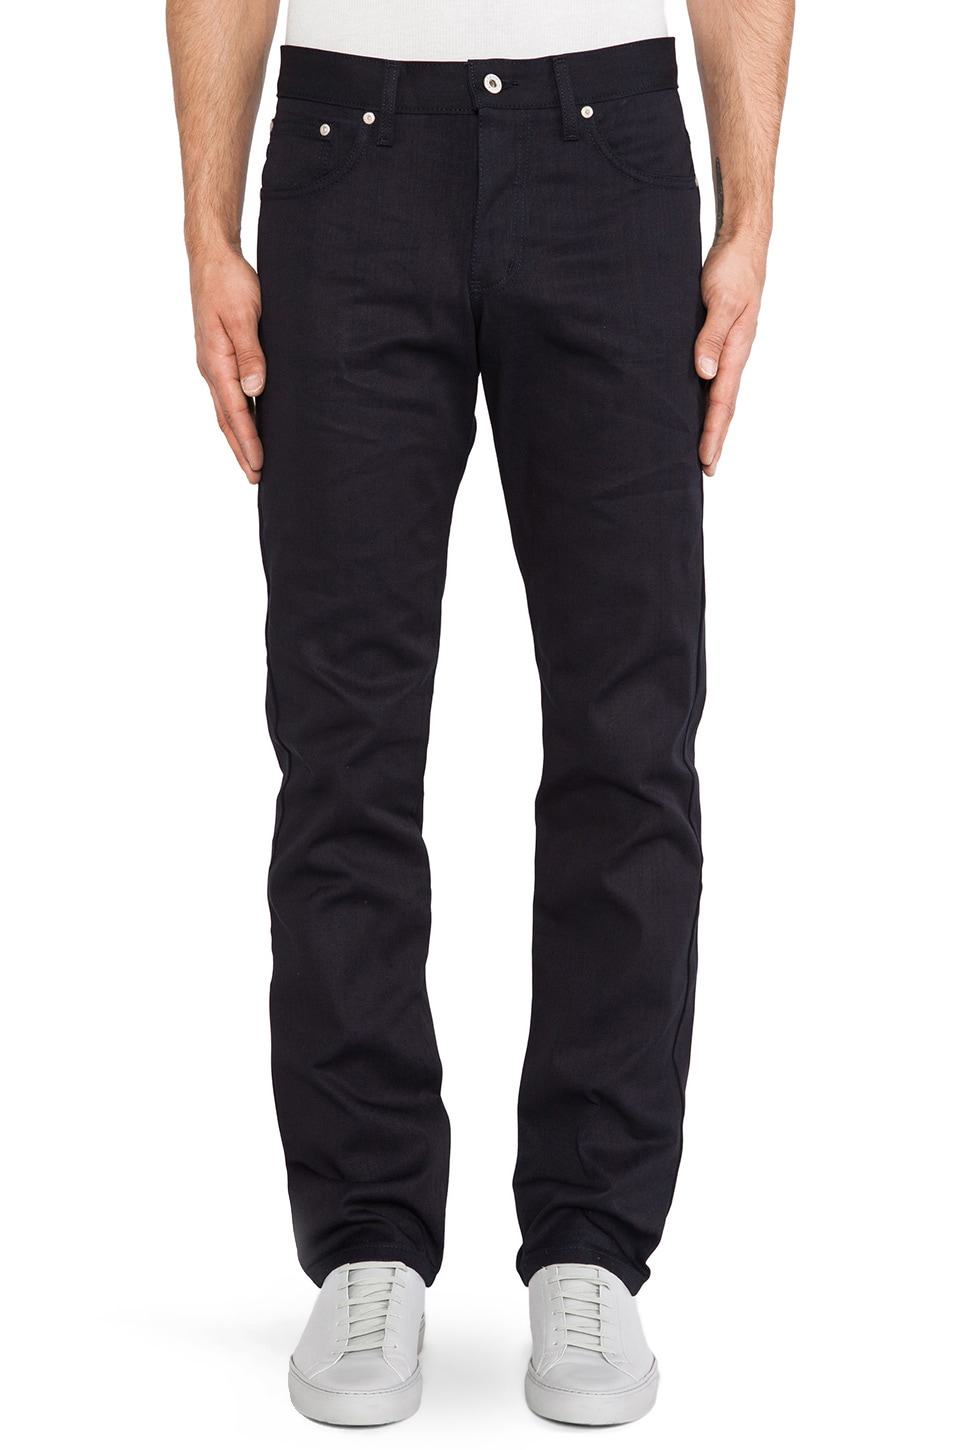 Naked & Famous Denim Slim Guy Lightweight Indigo/Indigo 8 oz in Indigo